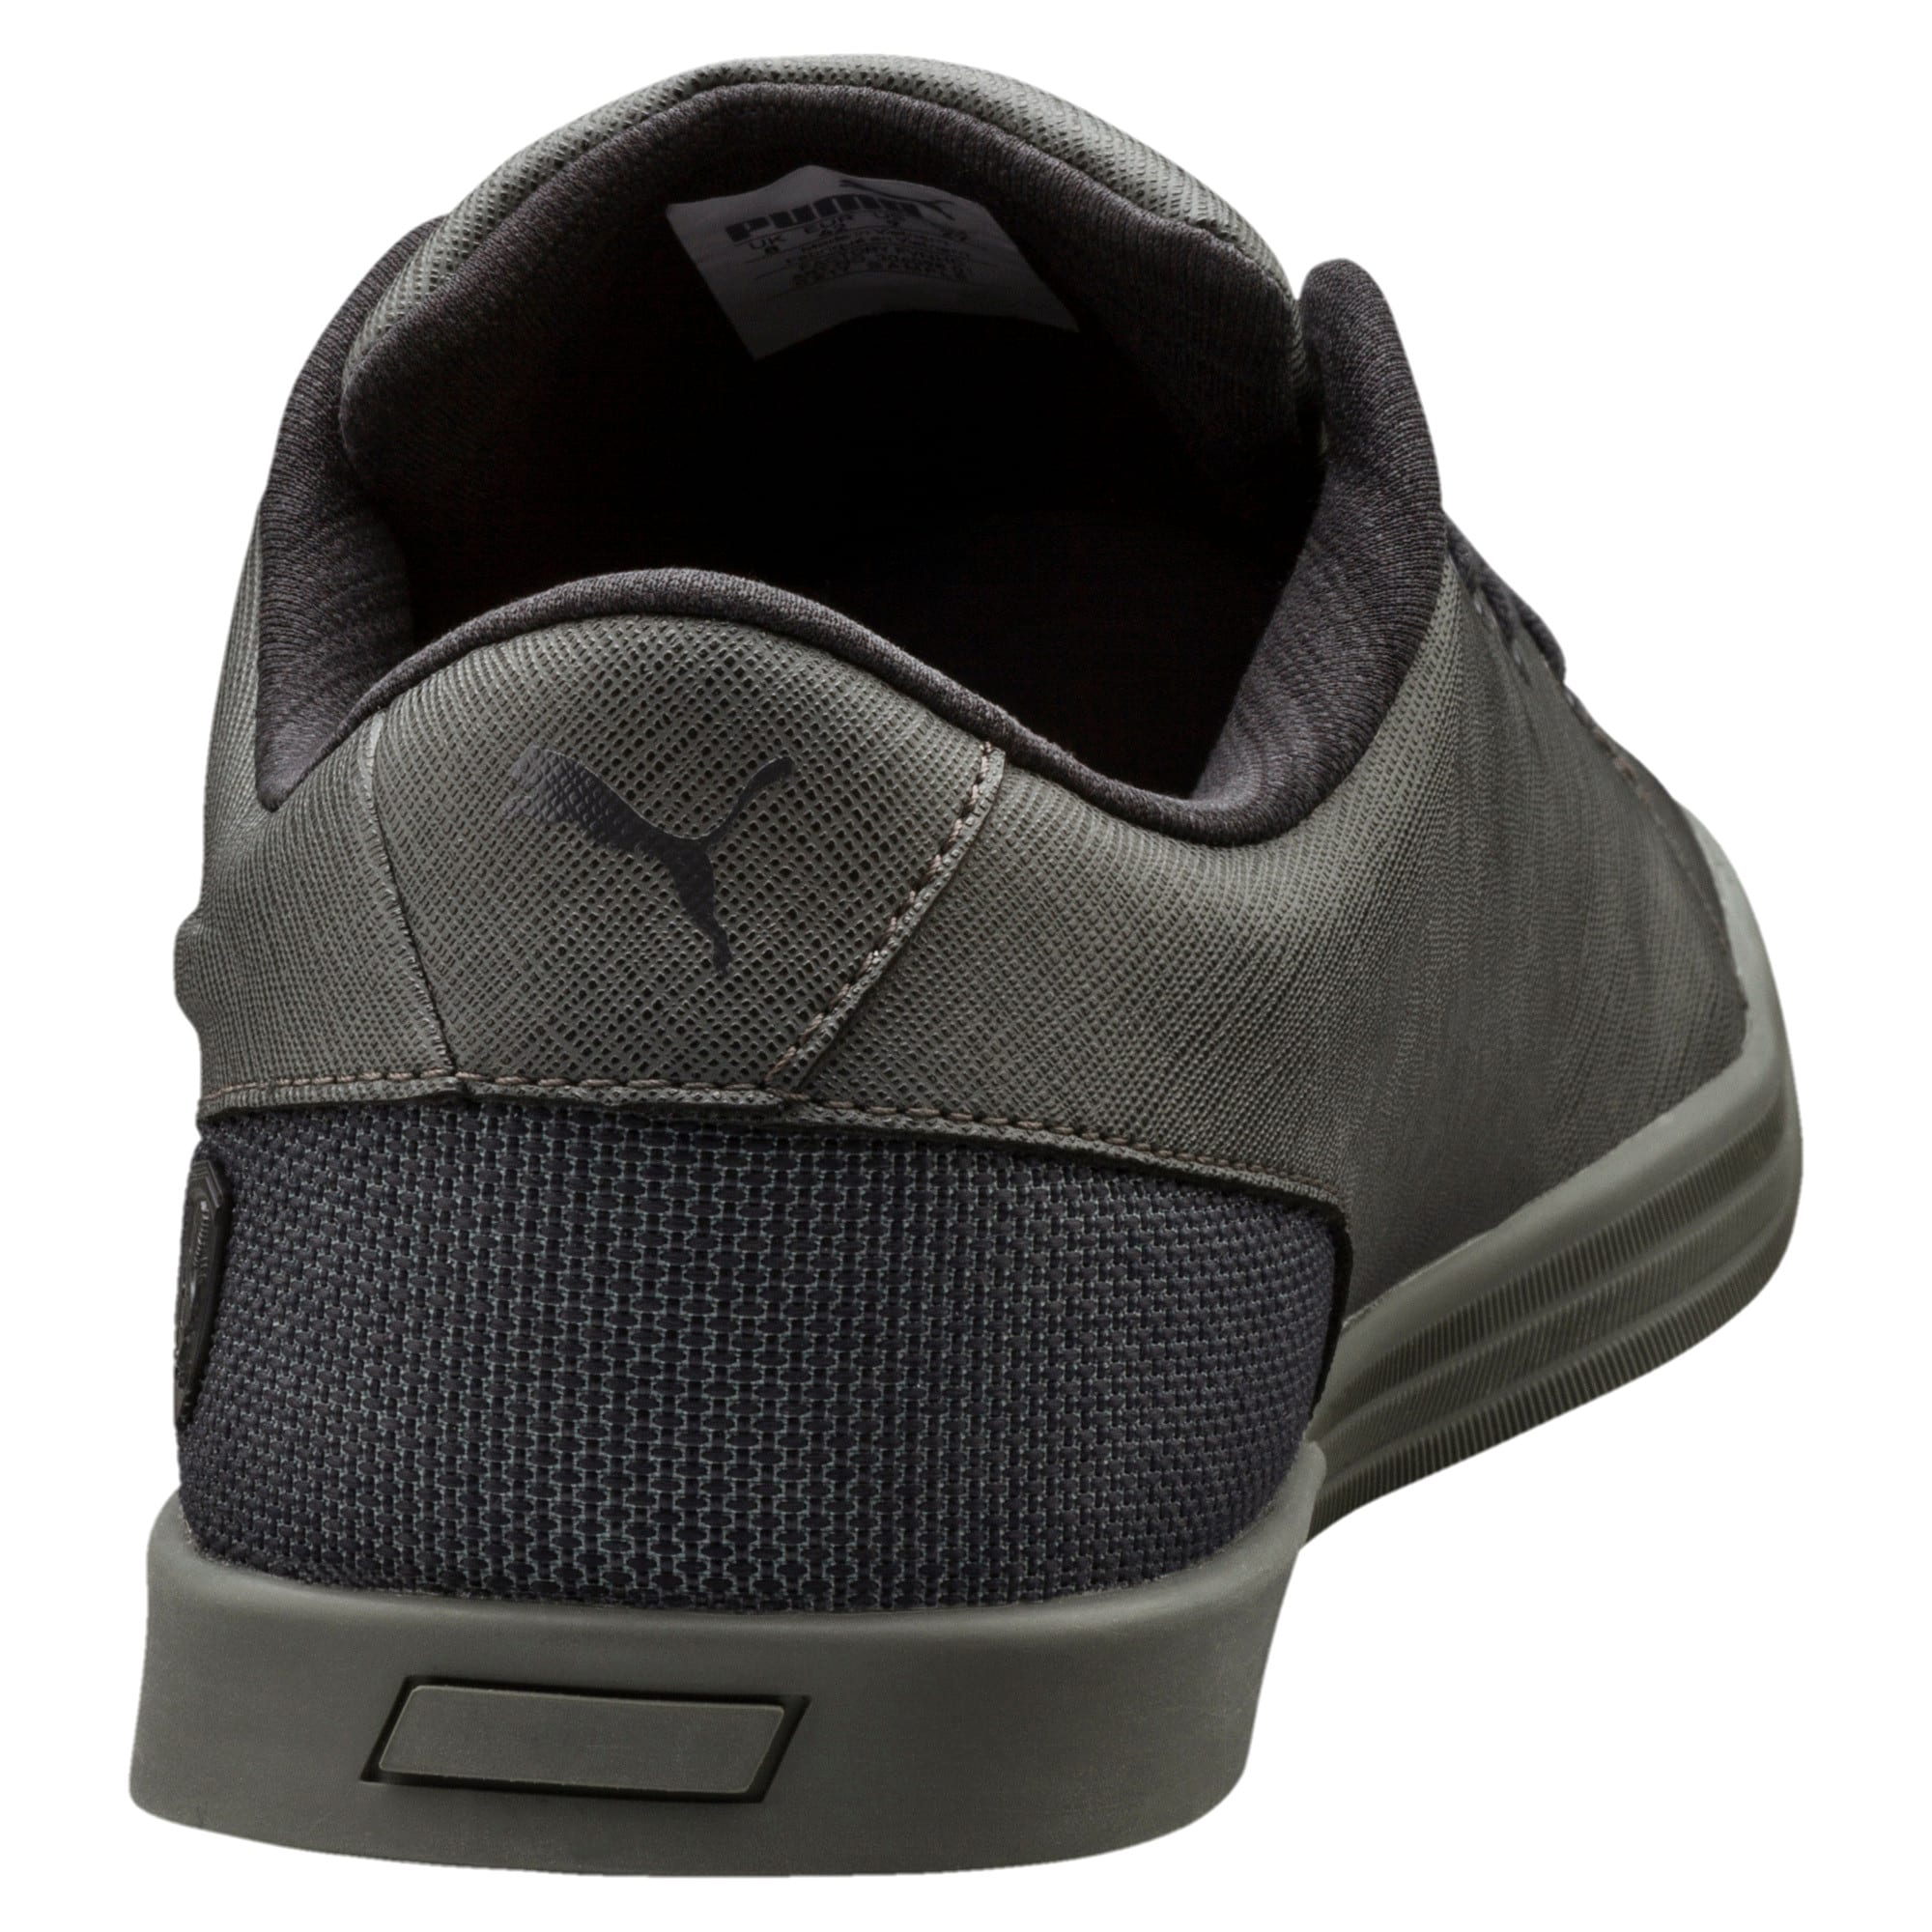 Thumbnail 3 of Ferrari Wayfarer Trainers, Moonless Night-Dark Shadow, medium-IND